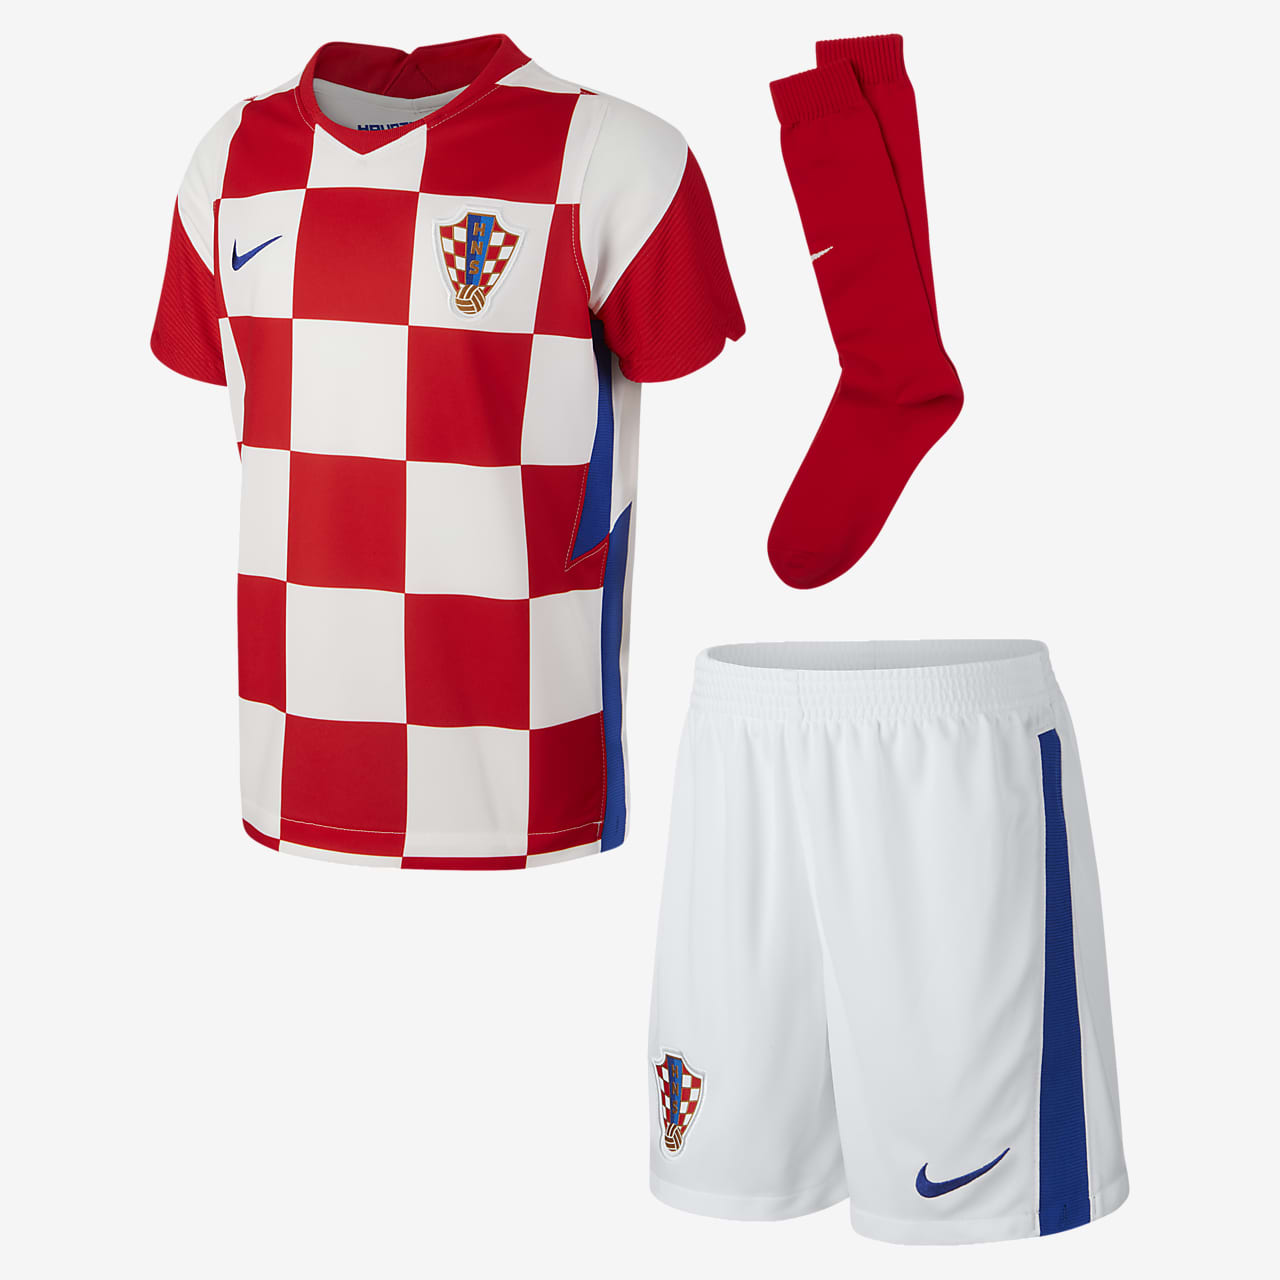 Croatia 2020 Home Younger Kids' Football Kit